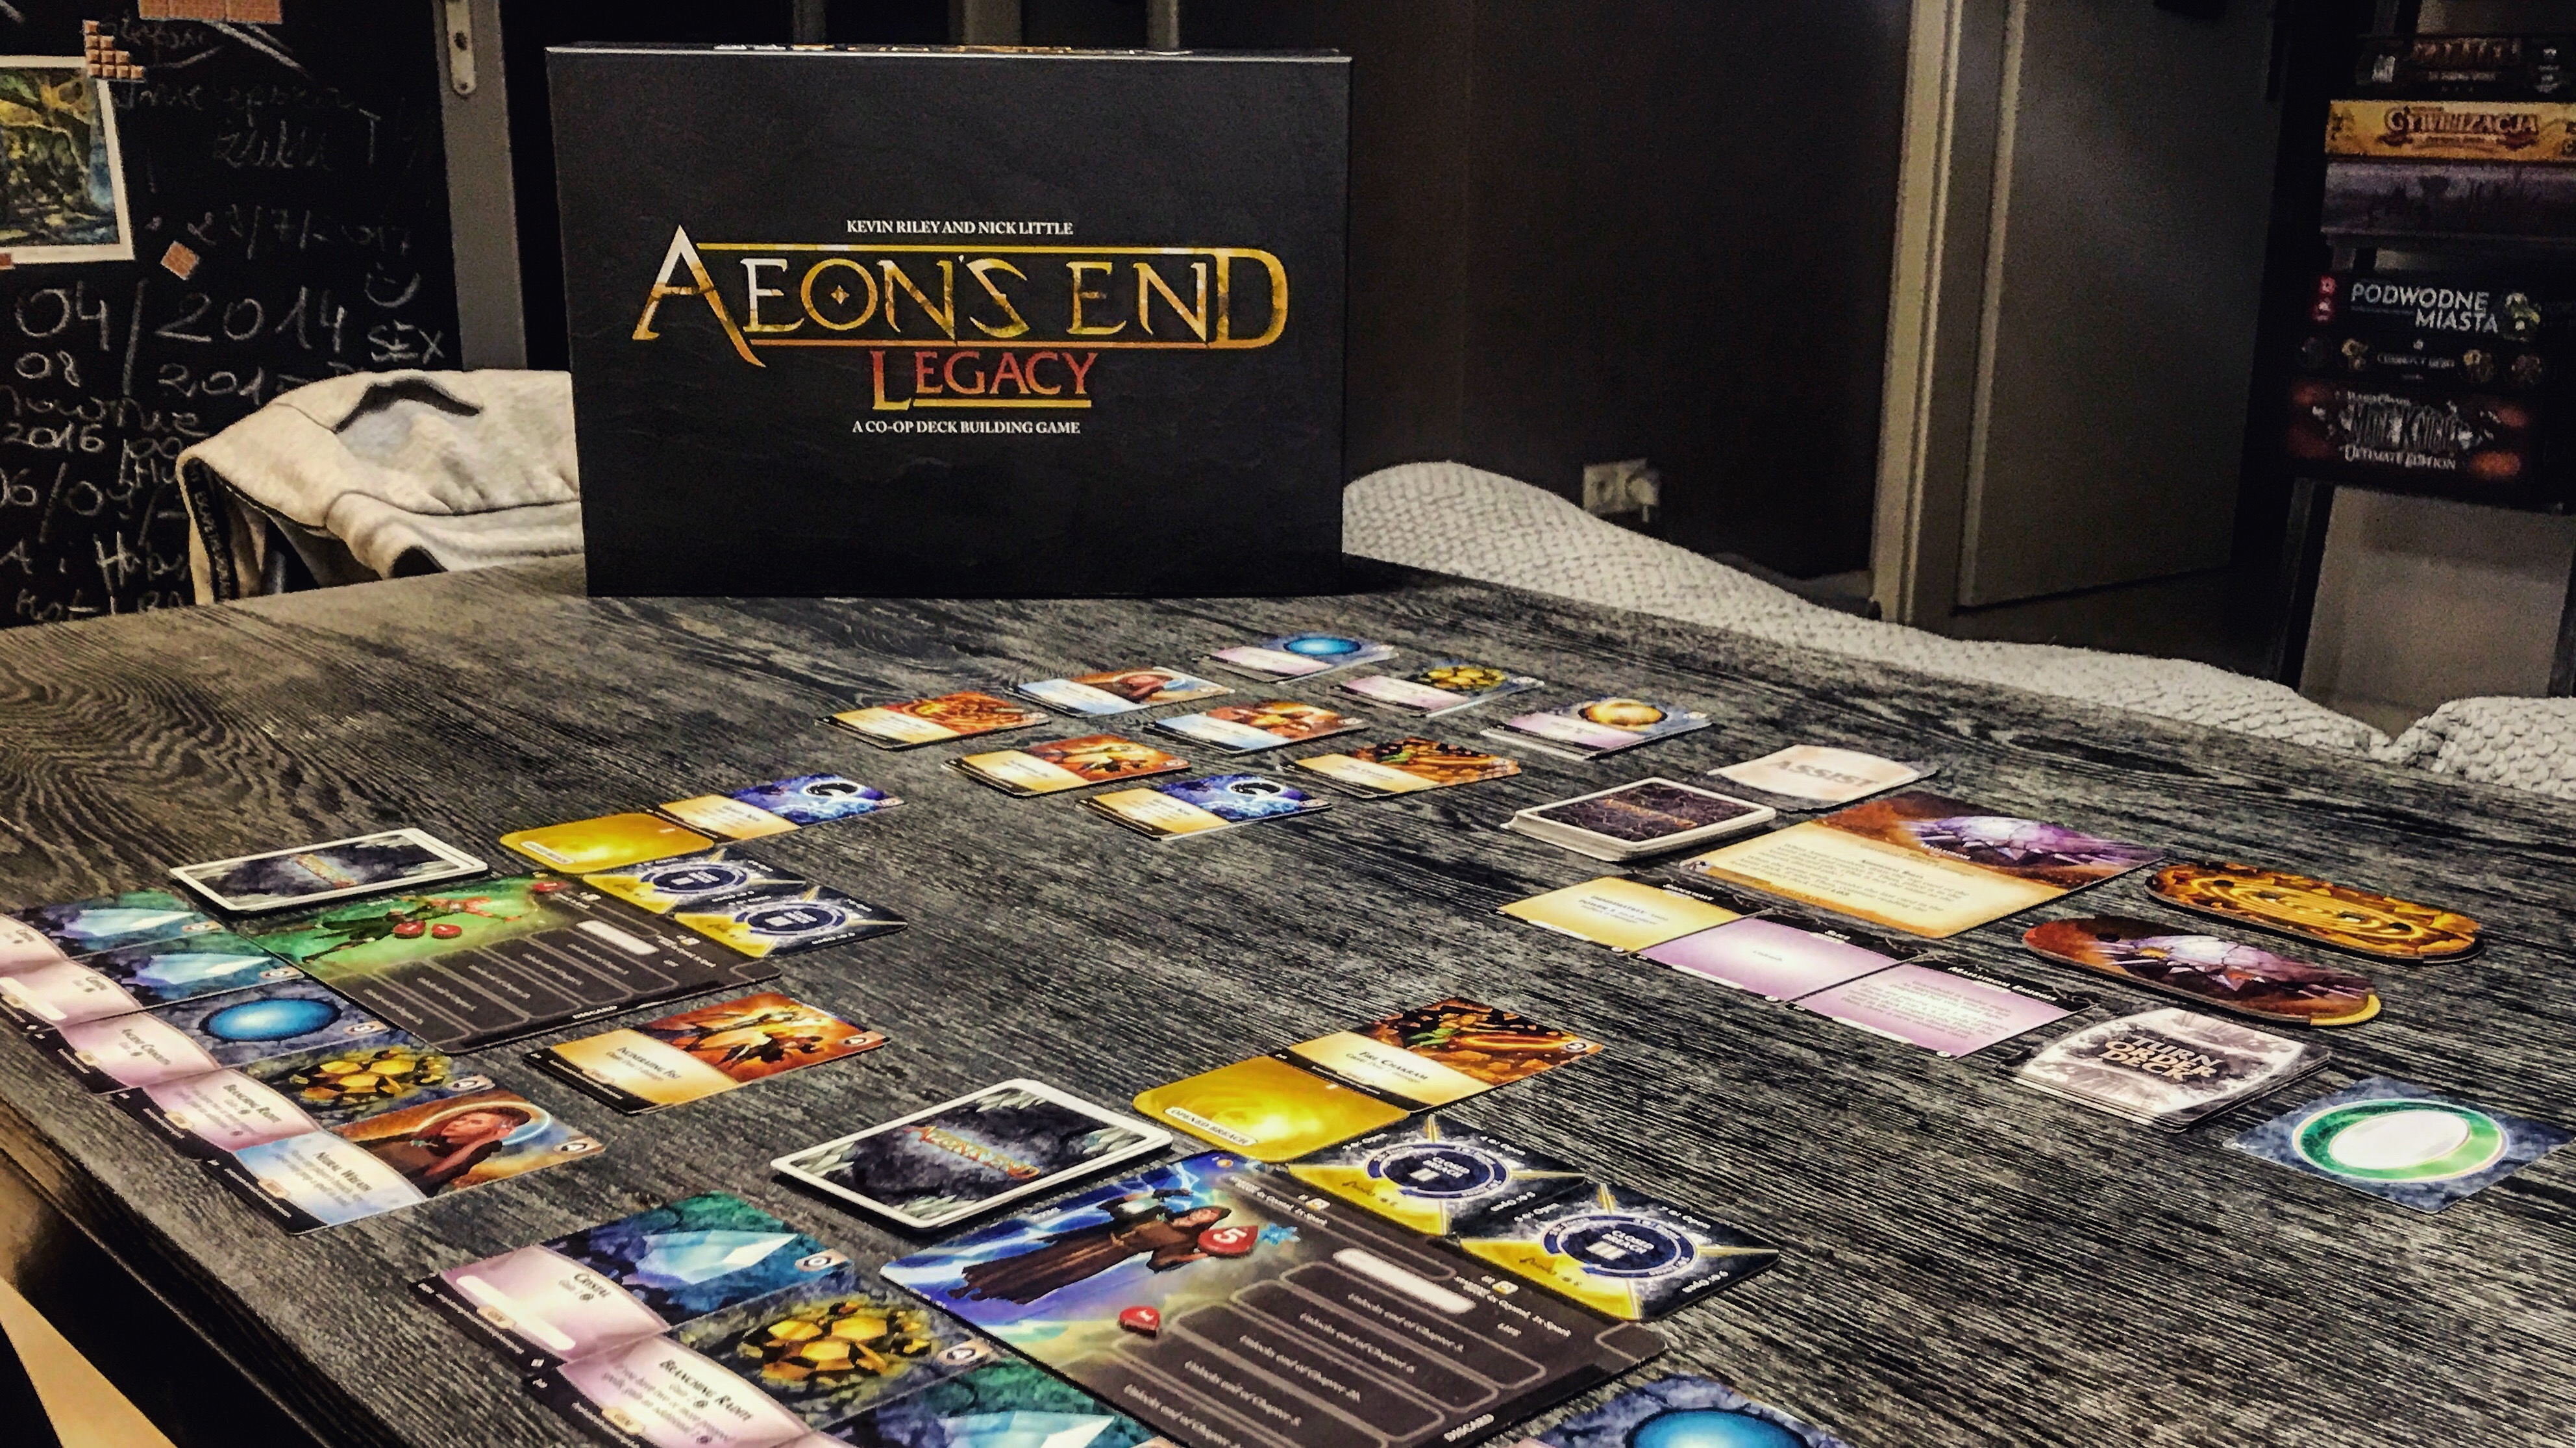 Aeon's End Legacy game and box